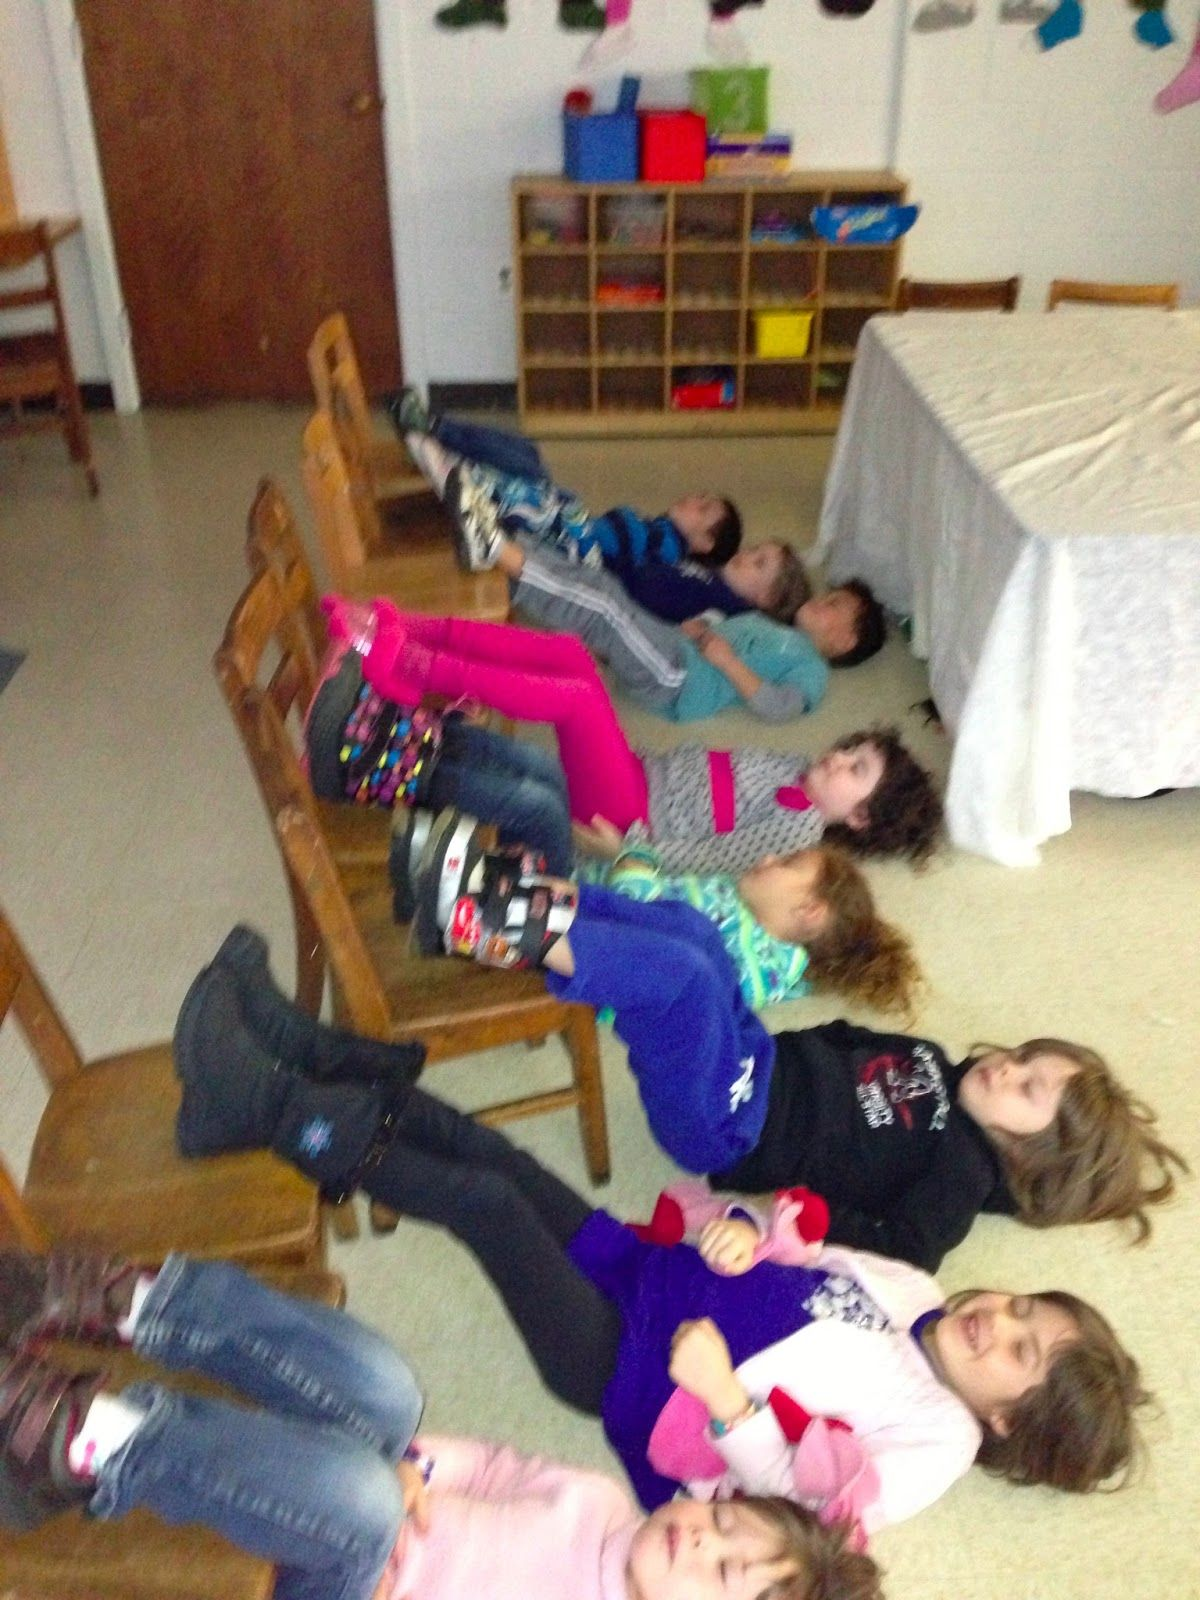 Adapt Game For Older Children Signal Night By Turning